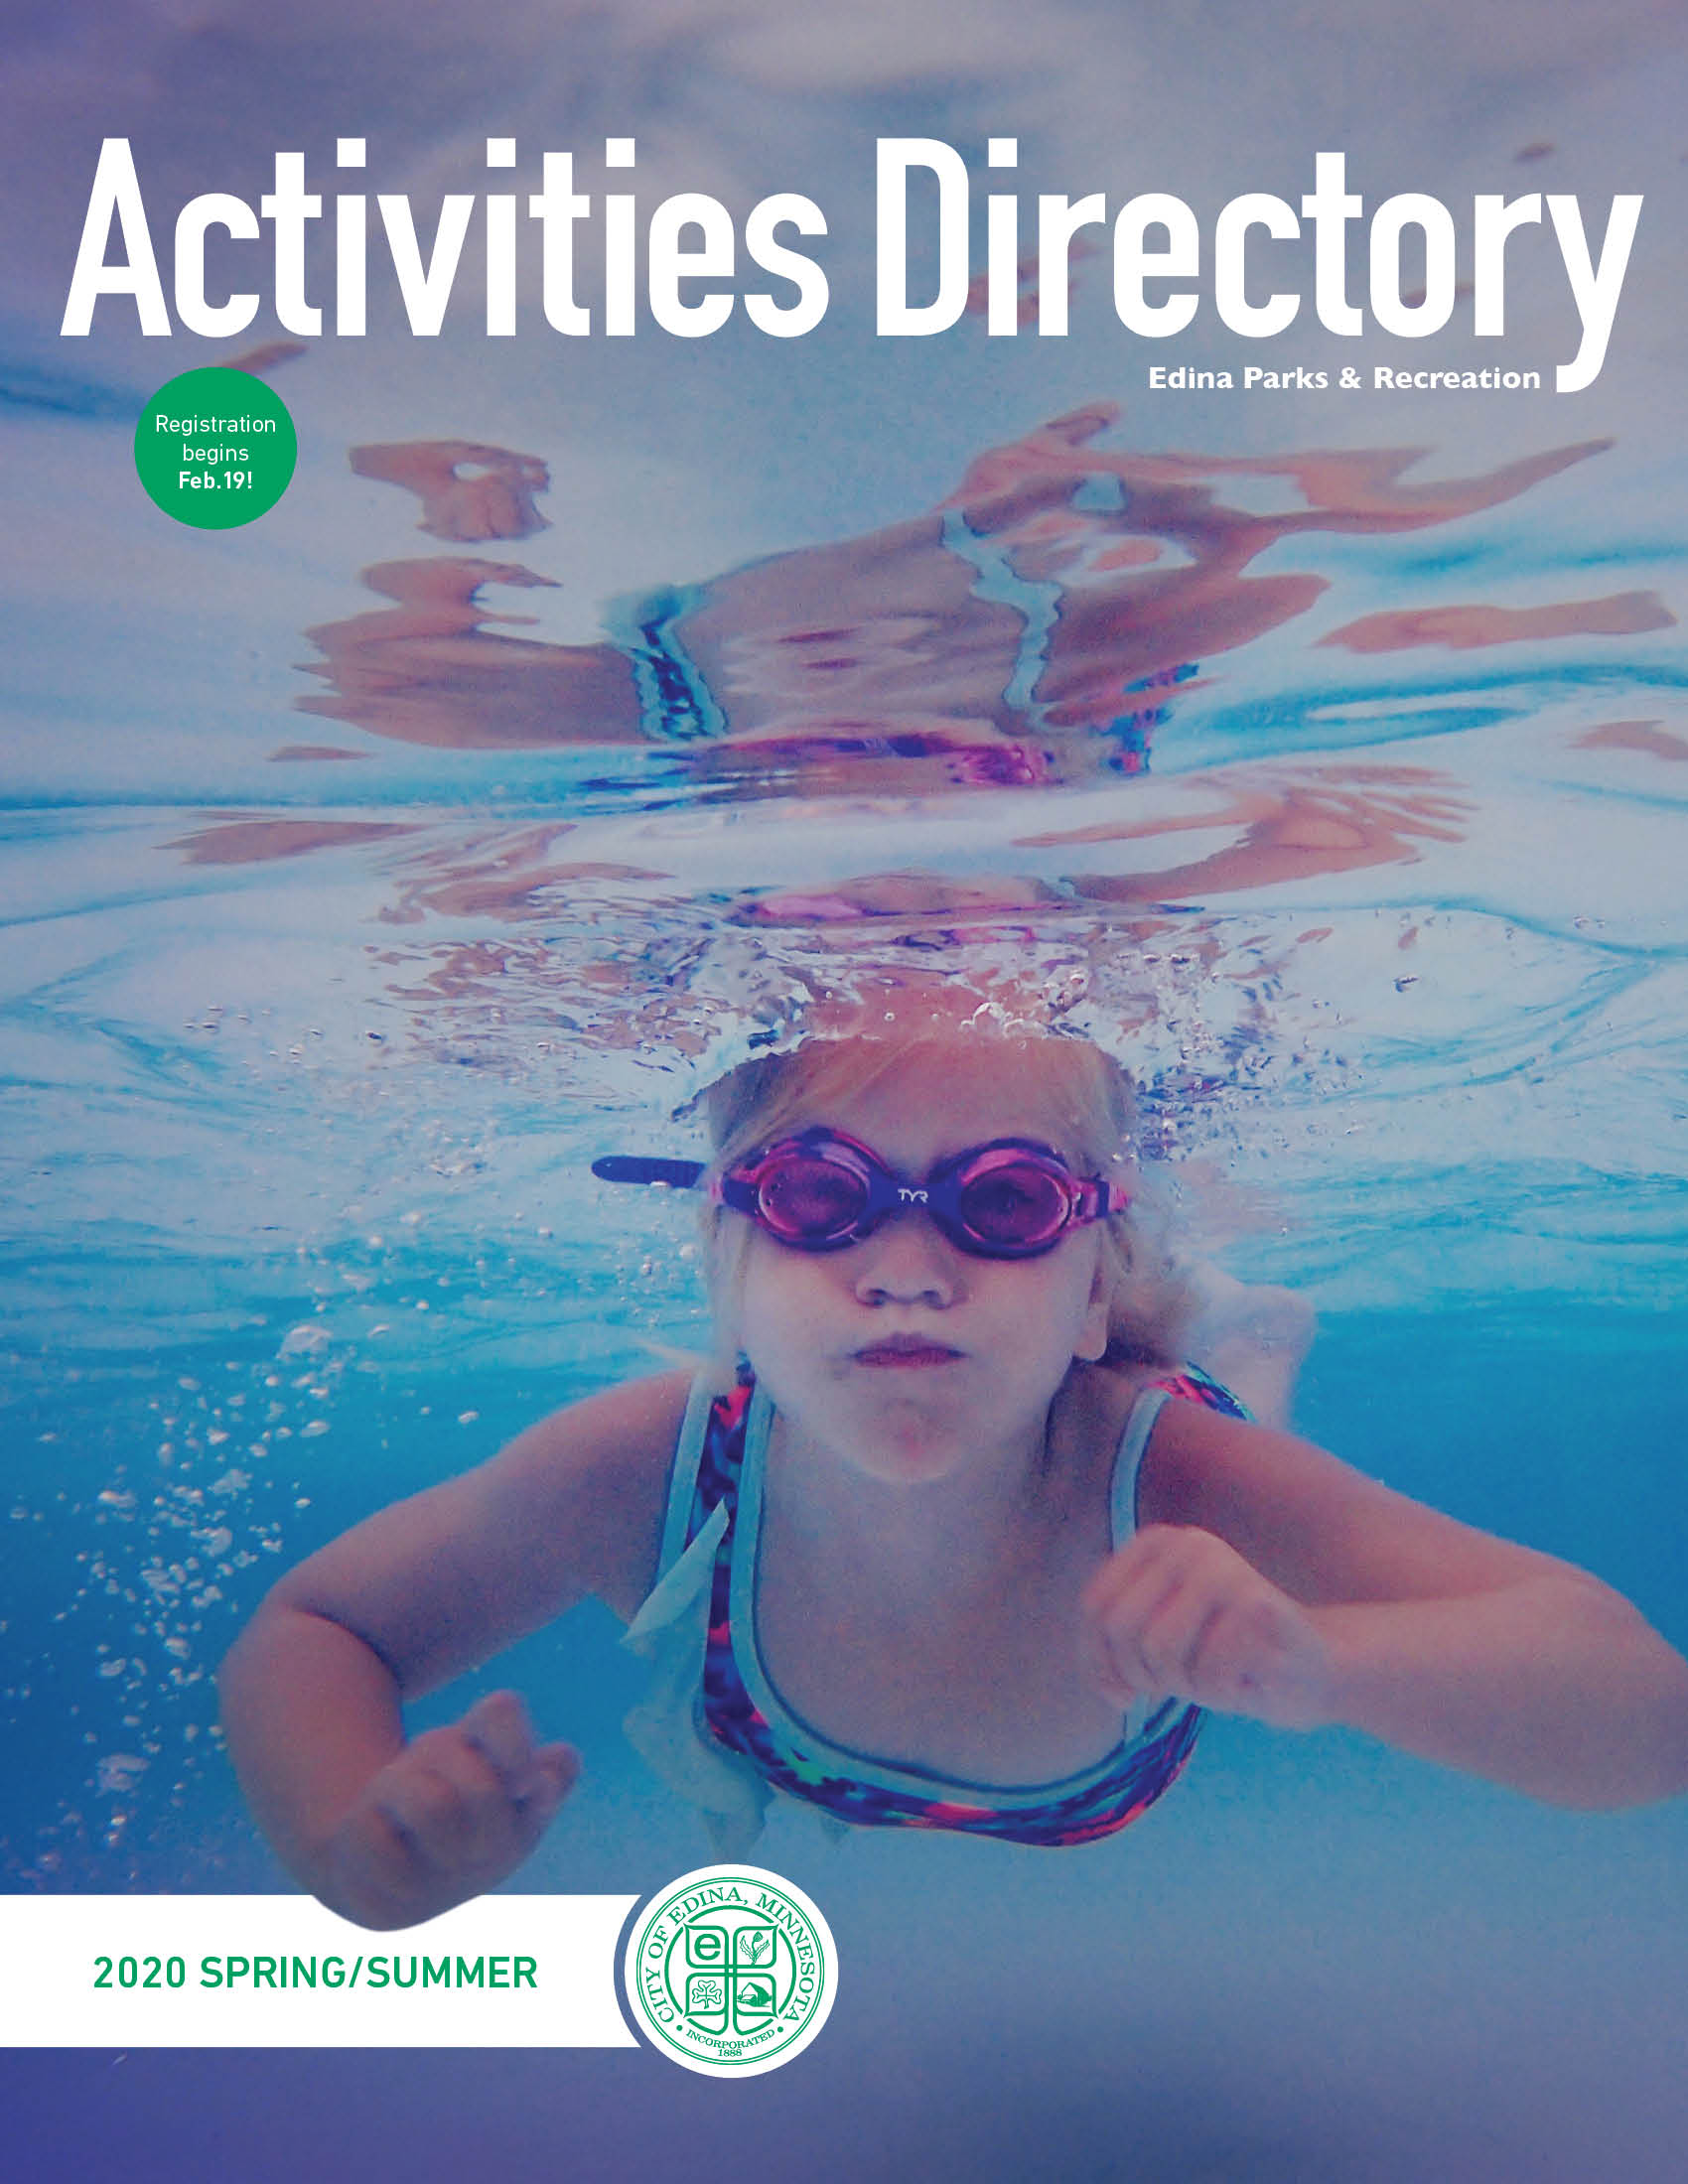 Activities Directory cover image of girl swimming